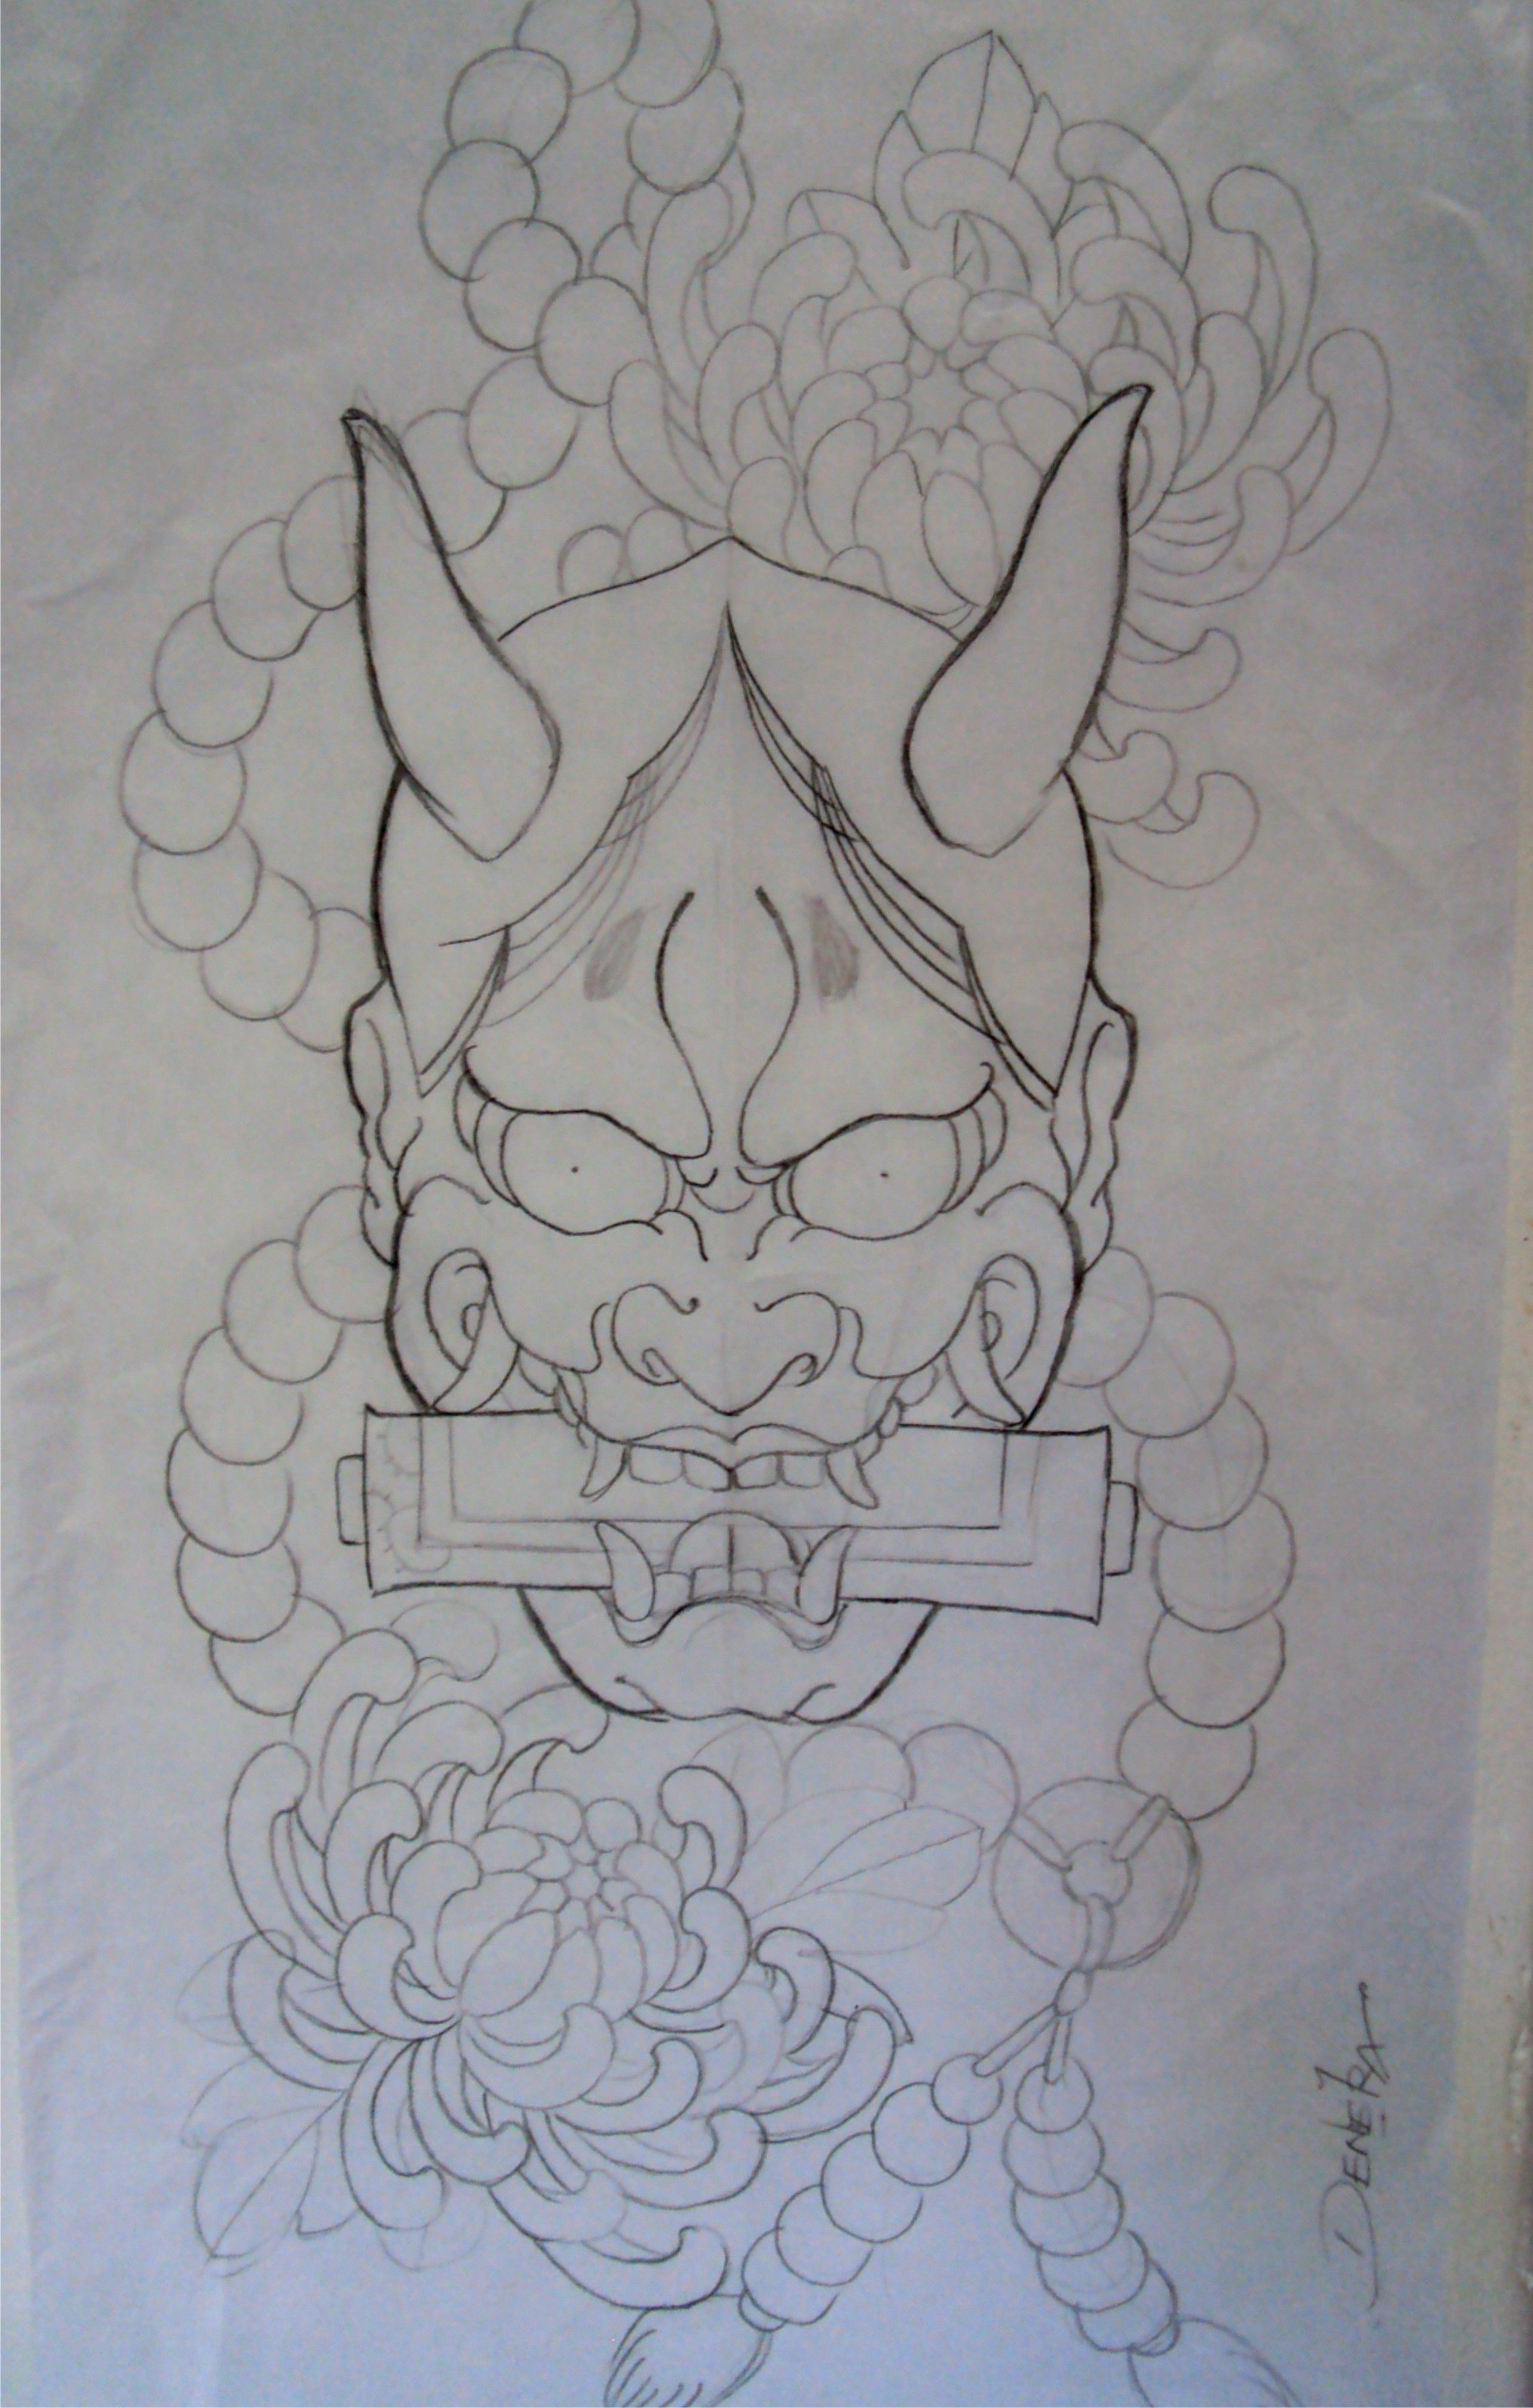 japanese-demon-tattoos part 4 | 3D tattoos images |Demon Japanese Traditional Designs